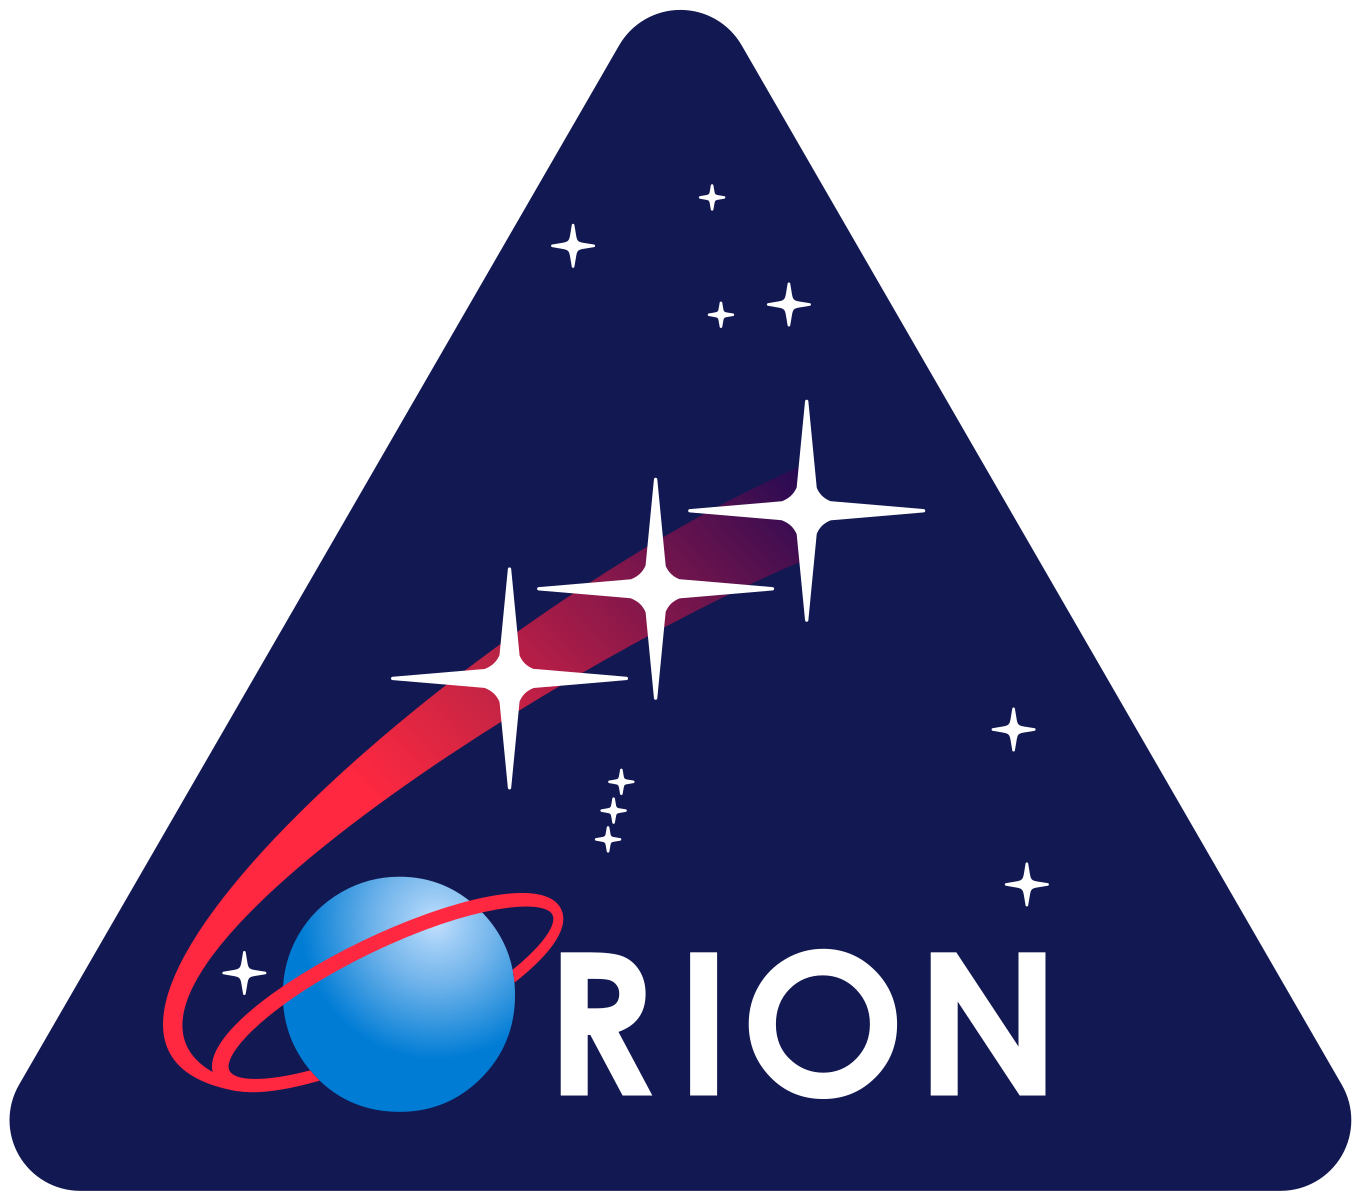 FileOrion Triangle Patch.svg Orion spacecraft, Nasa, Orion